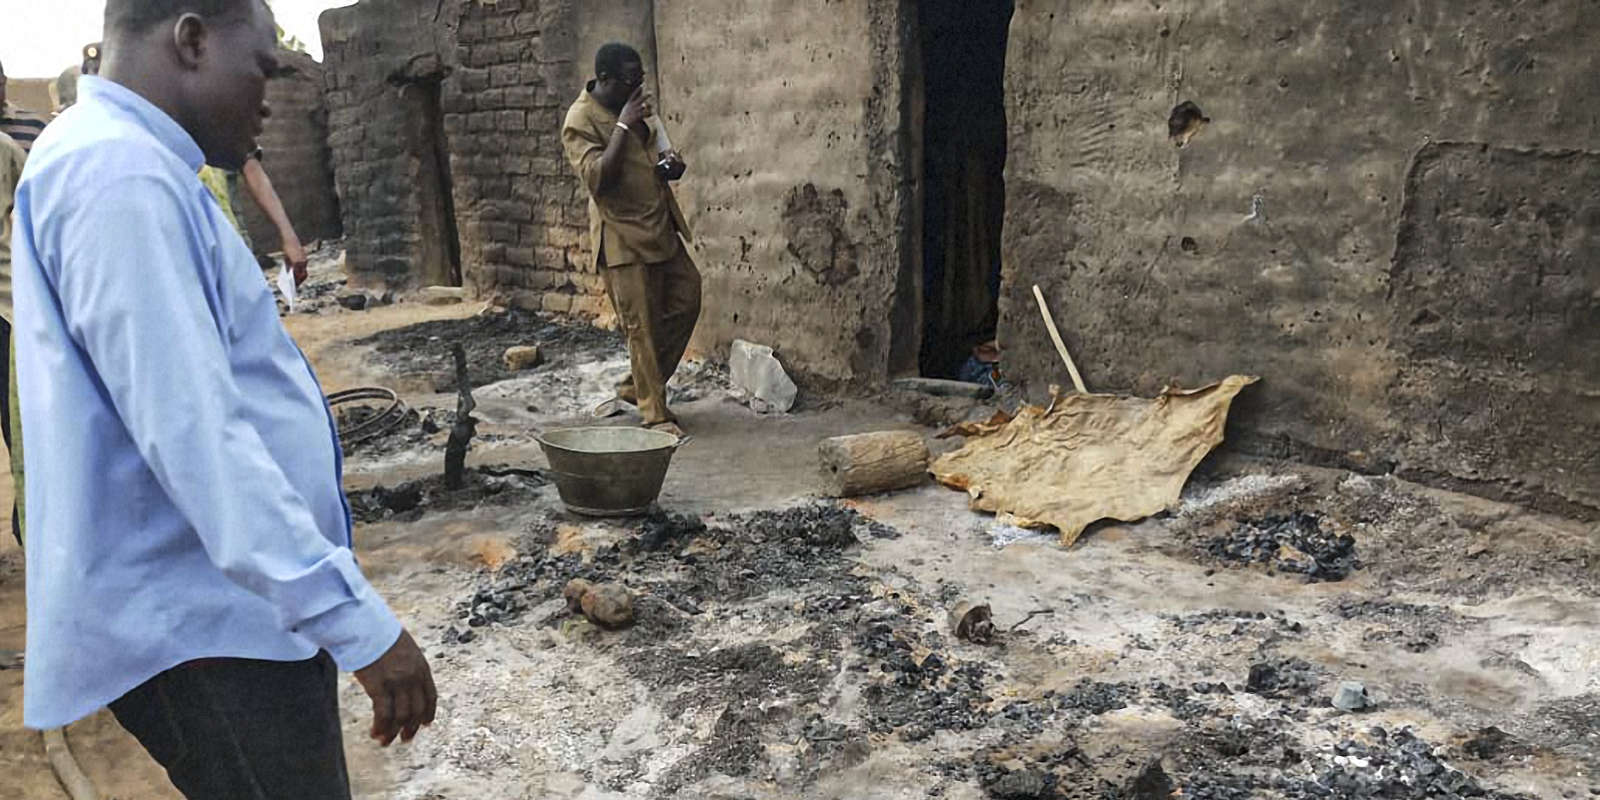 Officials and residents stand near ashes on June 11, 2019 in the Dogon village of Sobane-Kou, near Sangha, after an attack that killed over 100 ethnic Dogon on June 9, 2019 evening. The attack came less than three months after nearly 160 members of the Fulani ethnic group were slaughtered by a group identified as Dogon. / AFP / STRINGER